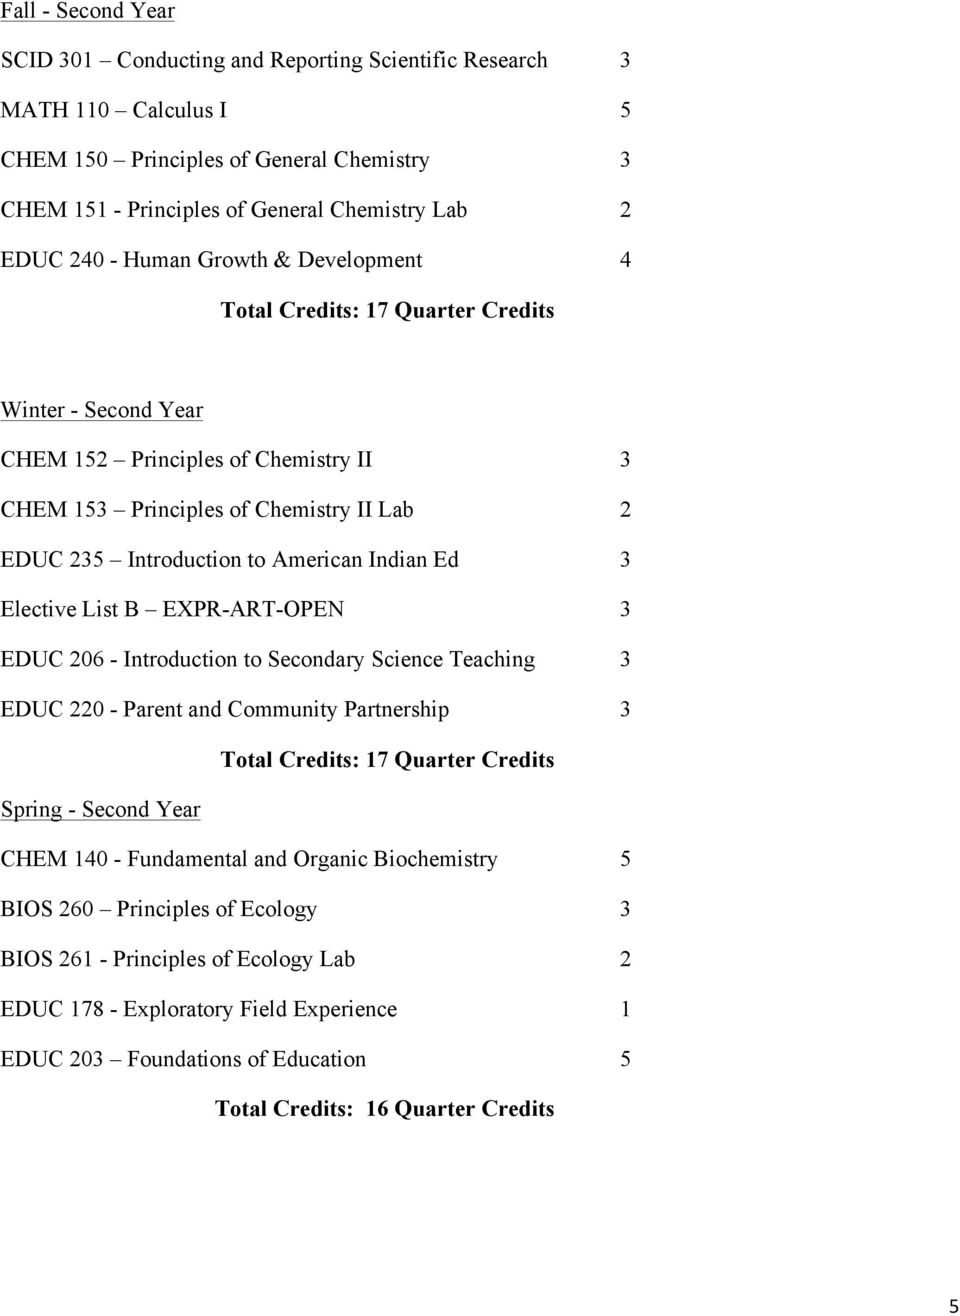 Indian Ed 3 Elective List B EXPR-ART-OPEN 3 EDUC 206 - Introduction to Secondary Science Teaching 3 EDUC 220 - Parent and Community Partnership 3 Spring - Second Year CHEM 140 -